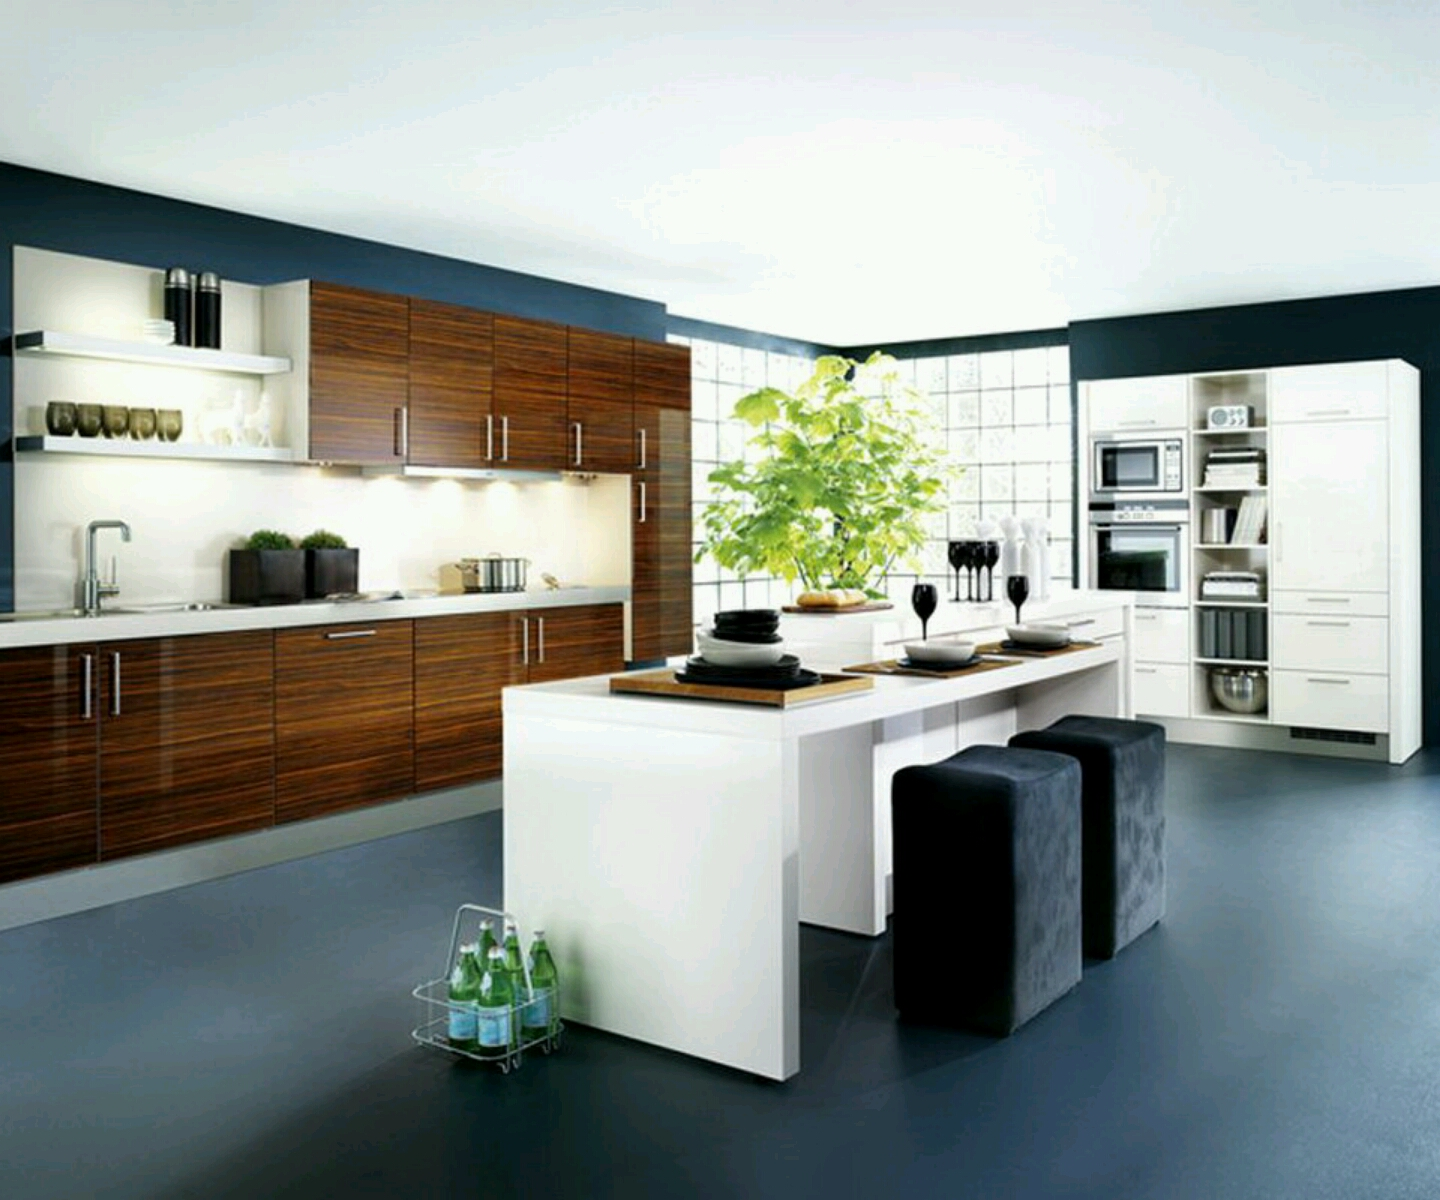 New home designs latest kitchen cabinets designs modern for Cabinet remodel